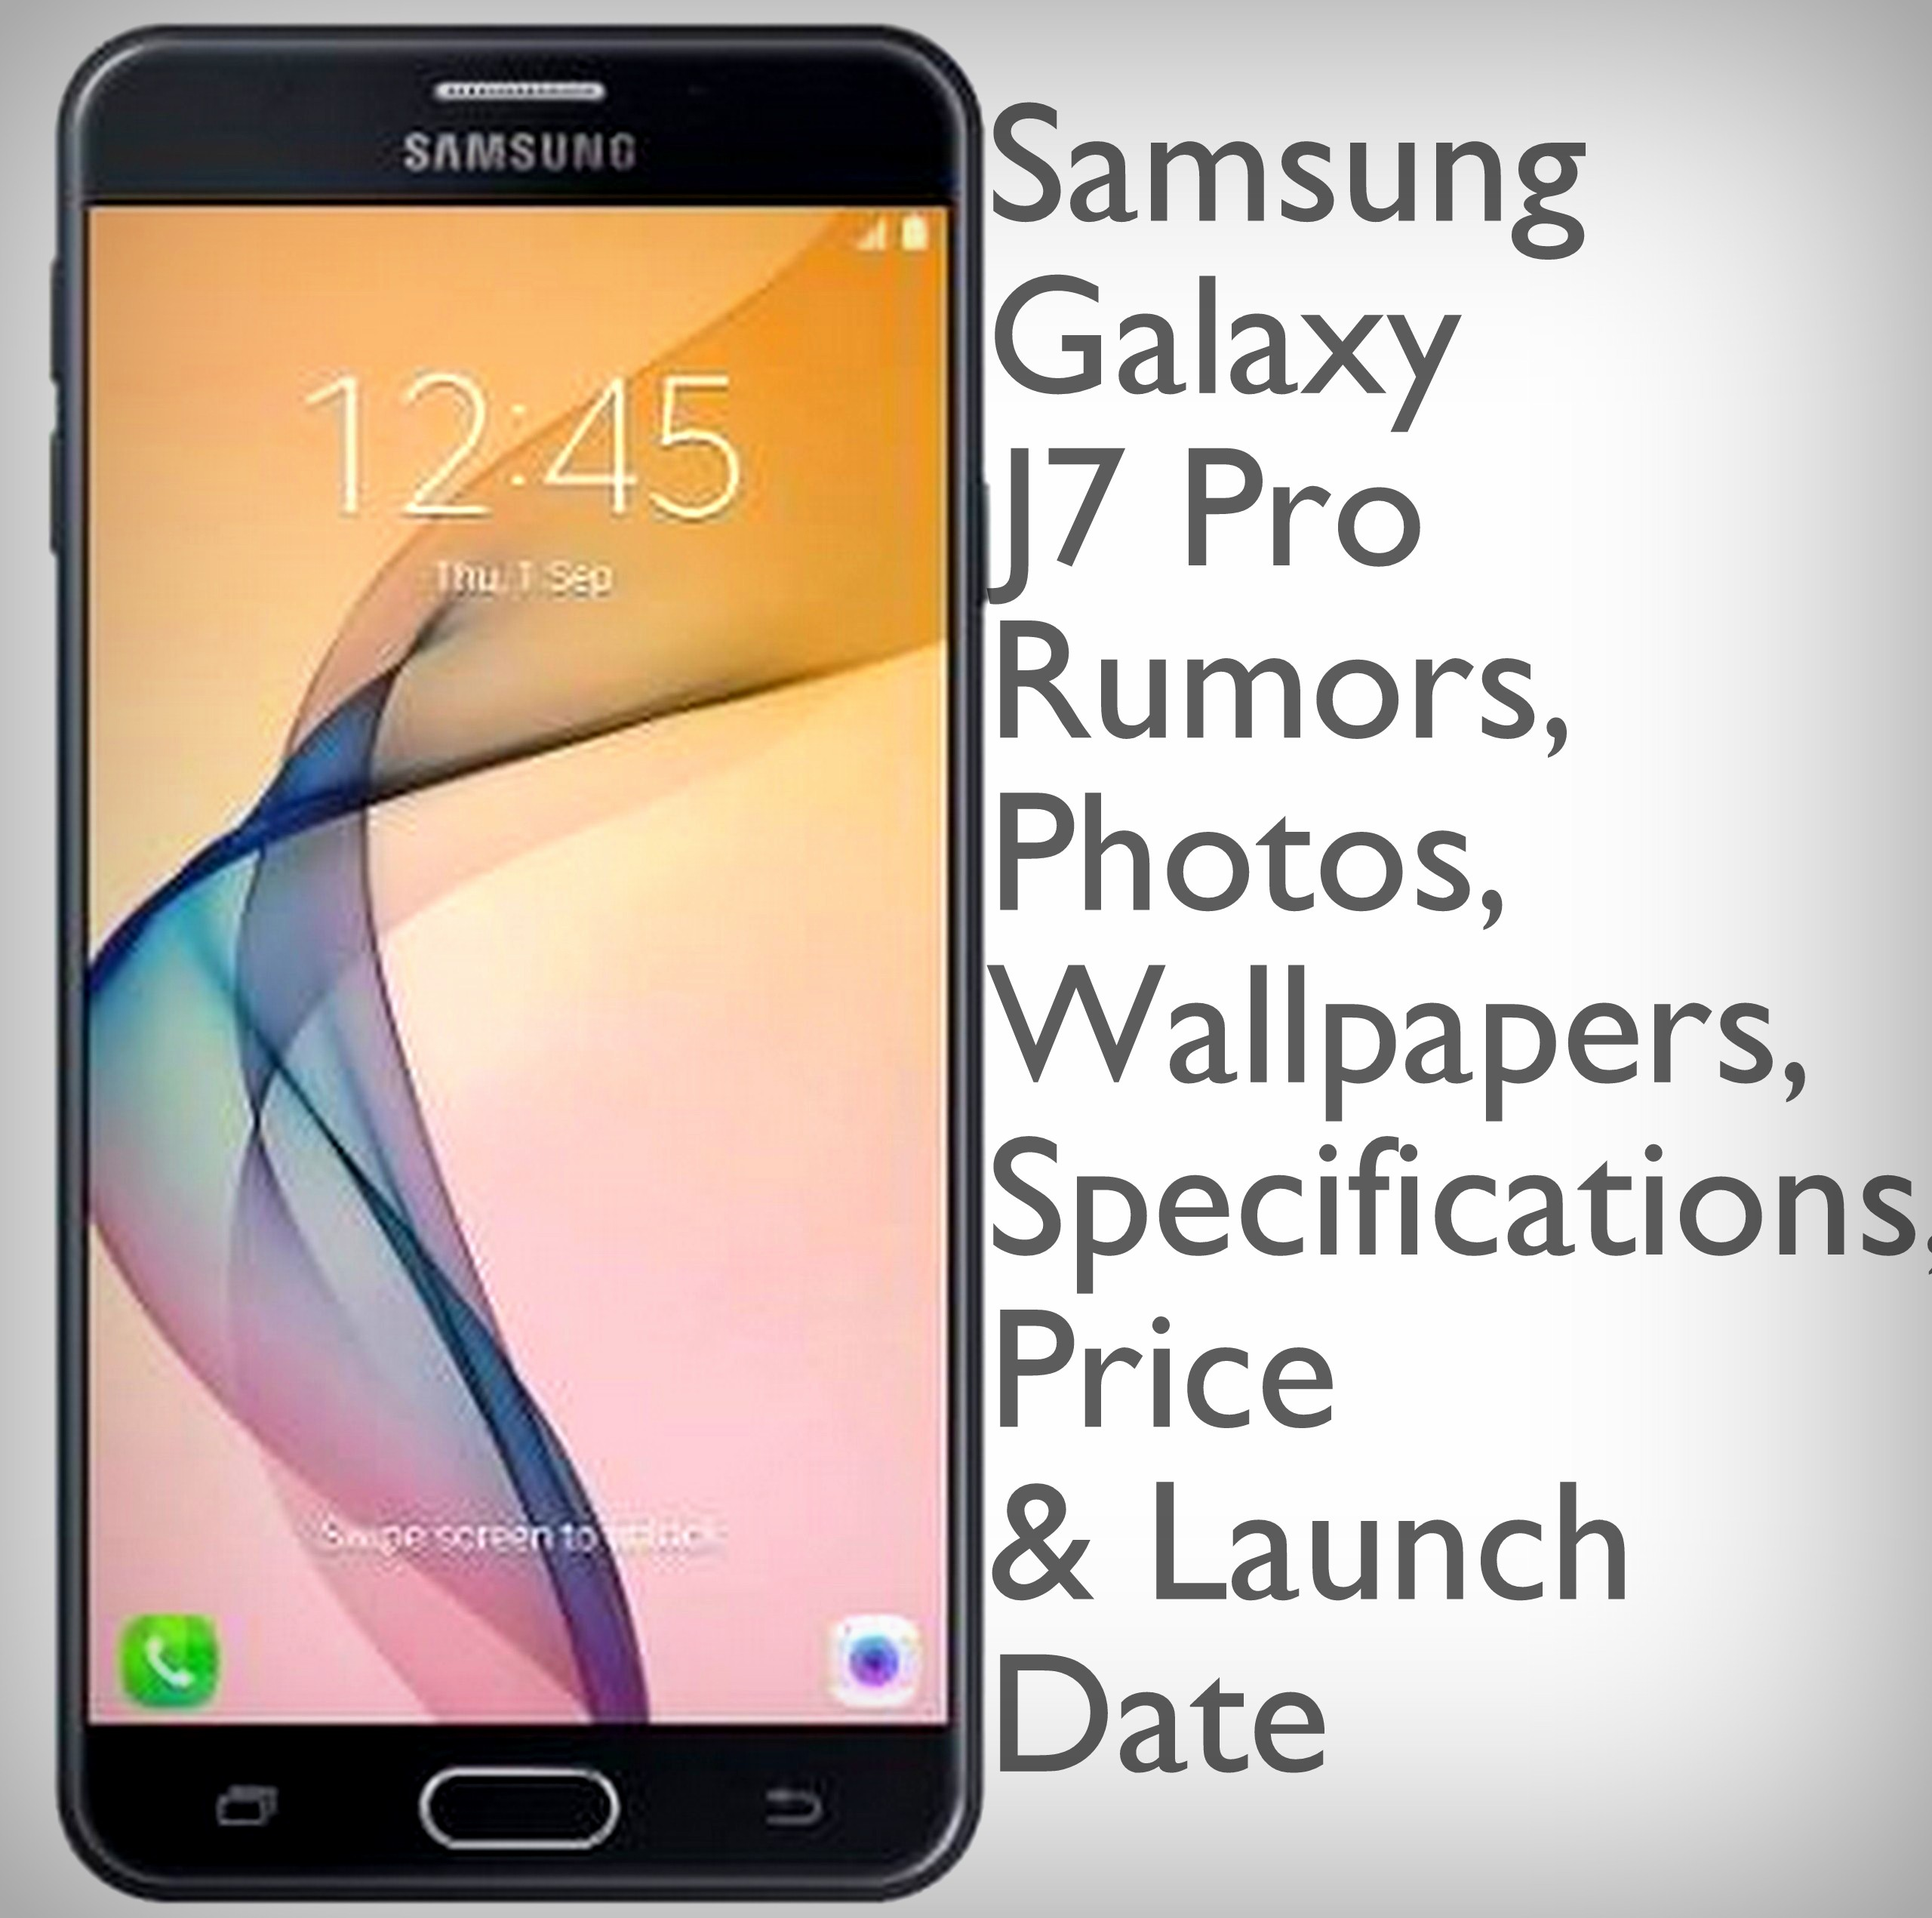 Samsung Galaxy J7 Pro Rumors Photos Wallpapers 2560x2541